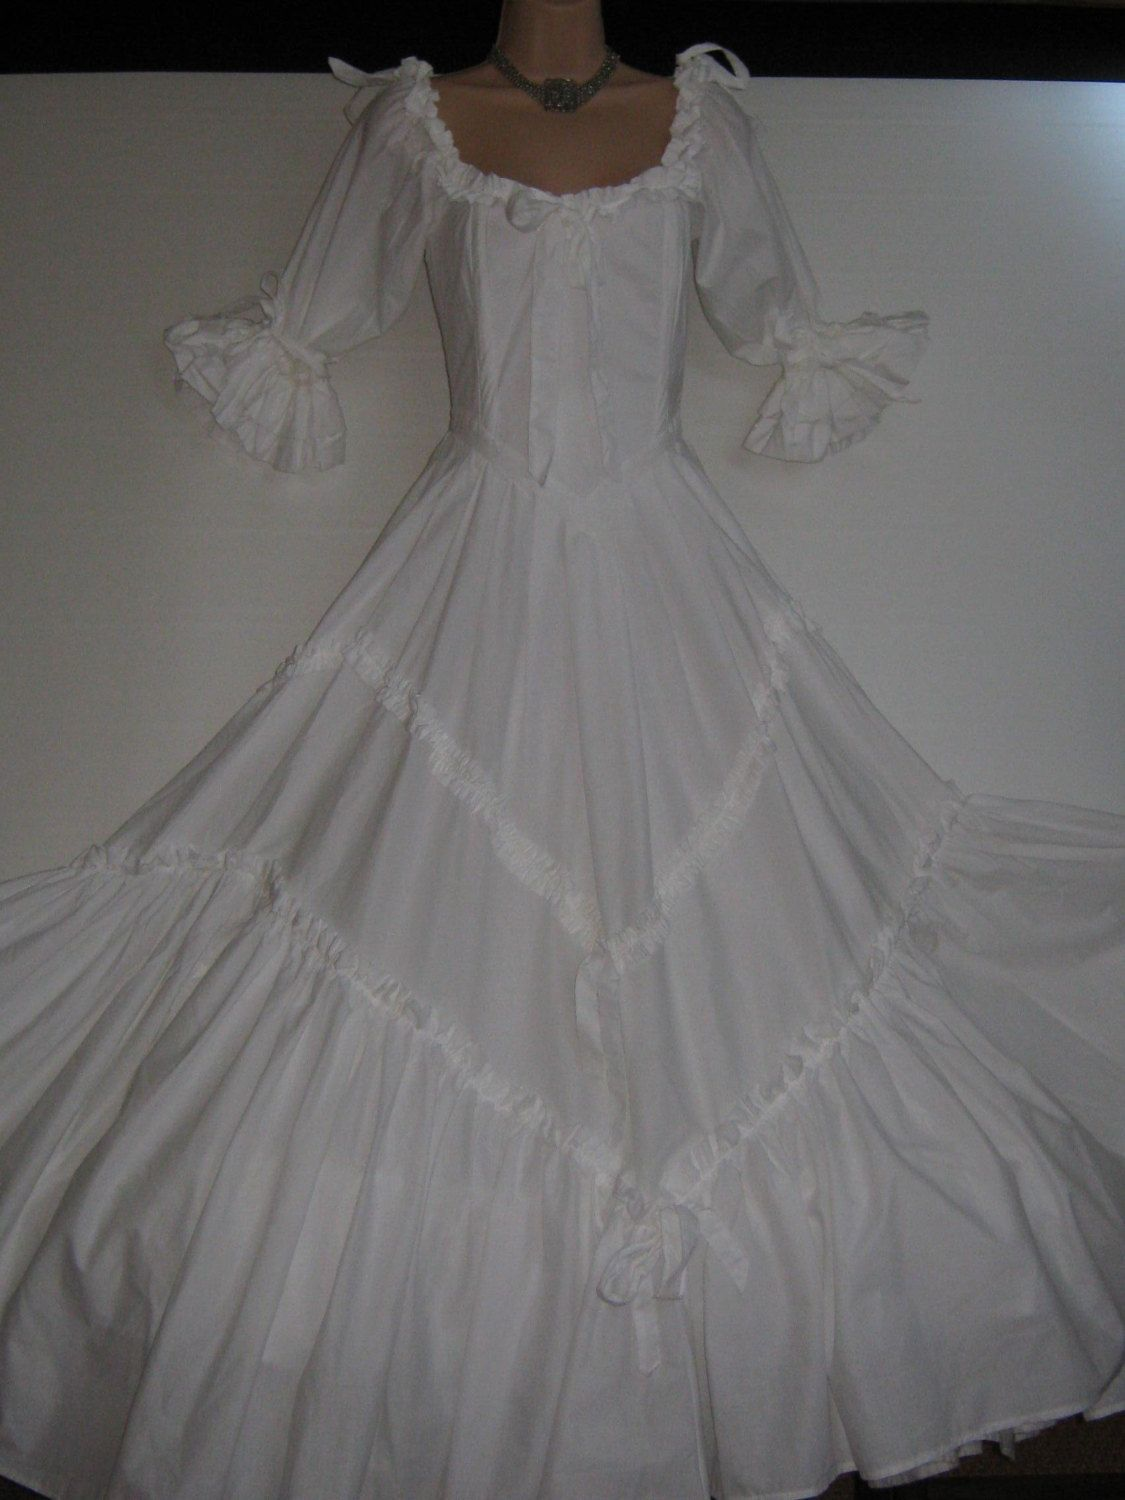 laura ashley wedding dresses LAURA ASHLEY Vintage Scarlett O Hara Southern Belle Wedding Dress Matching One Hoop Petticoat UK 8